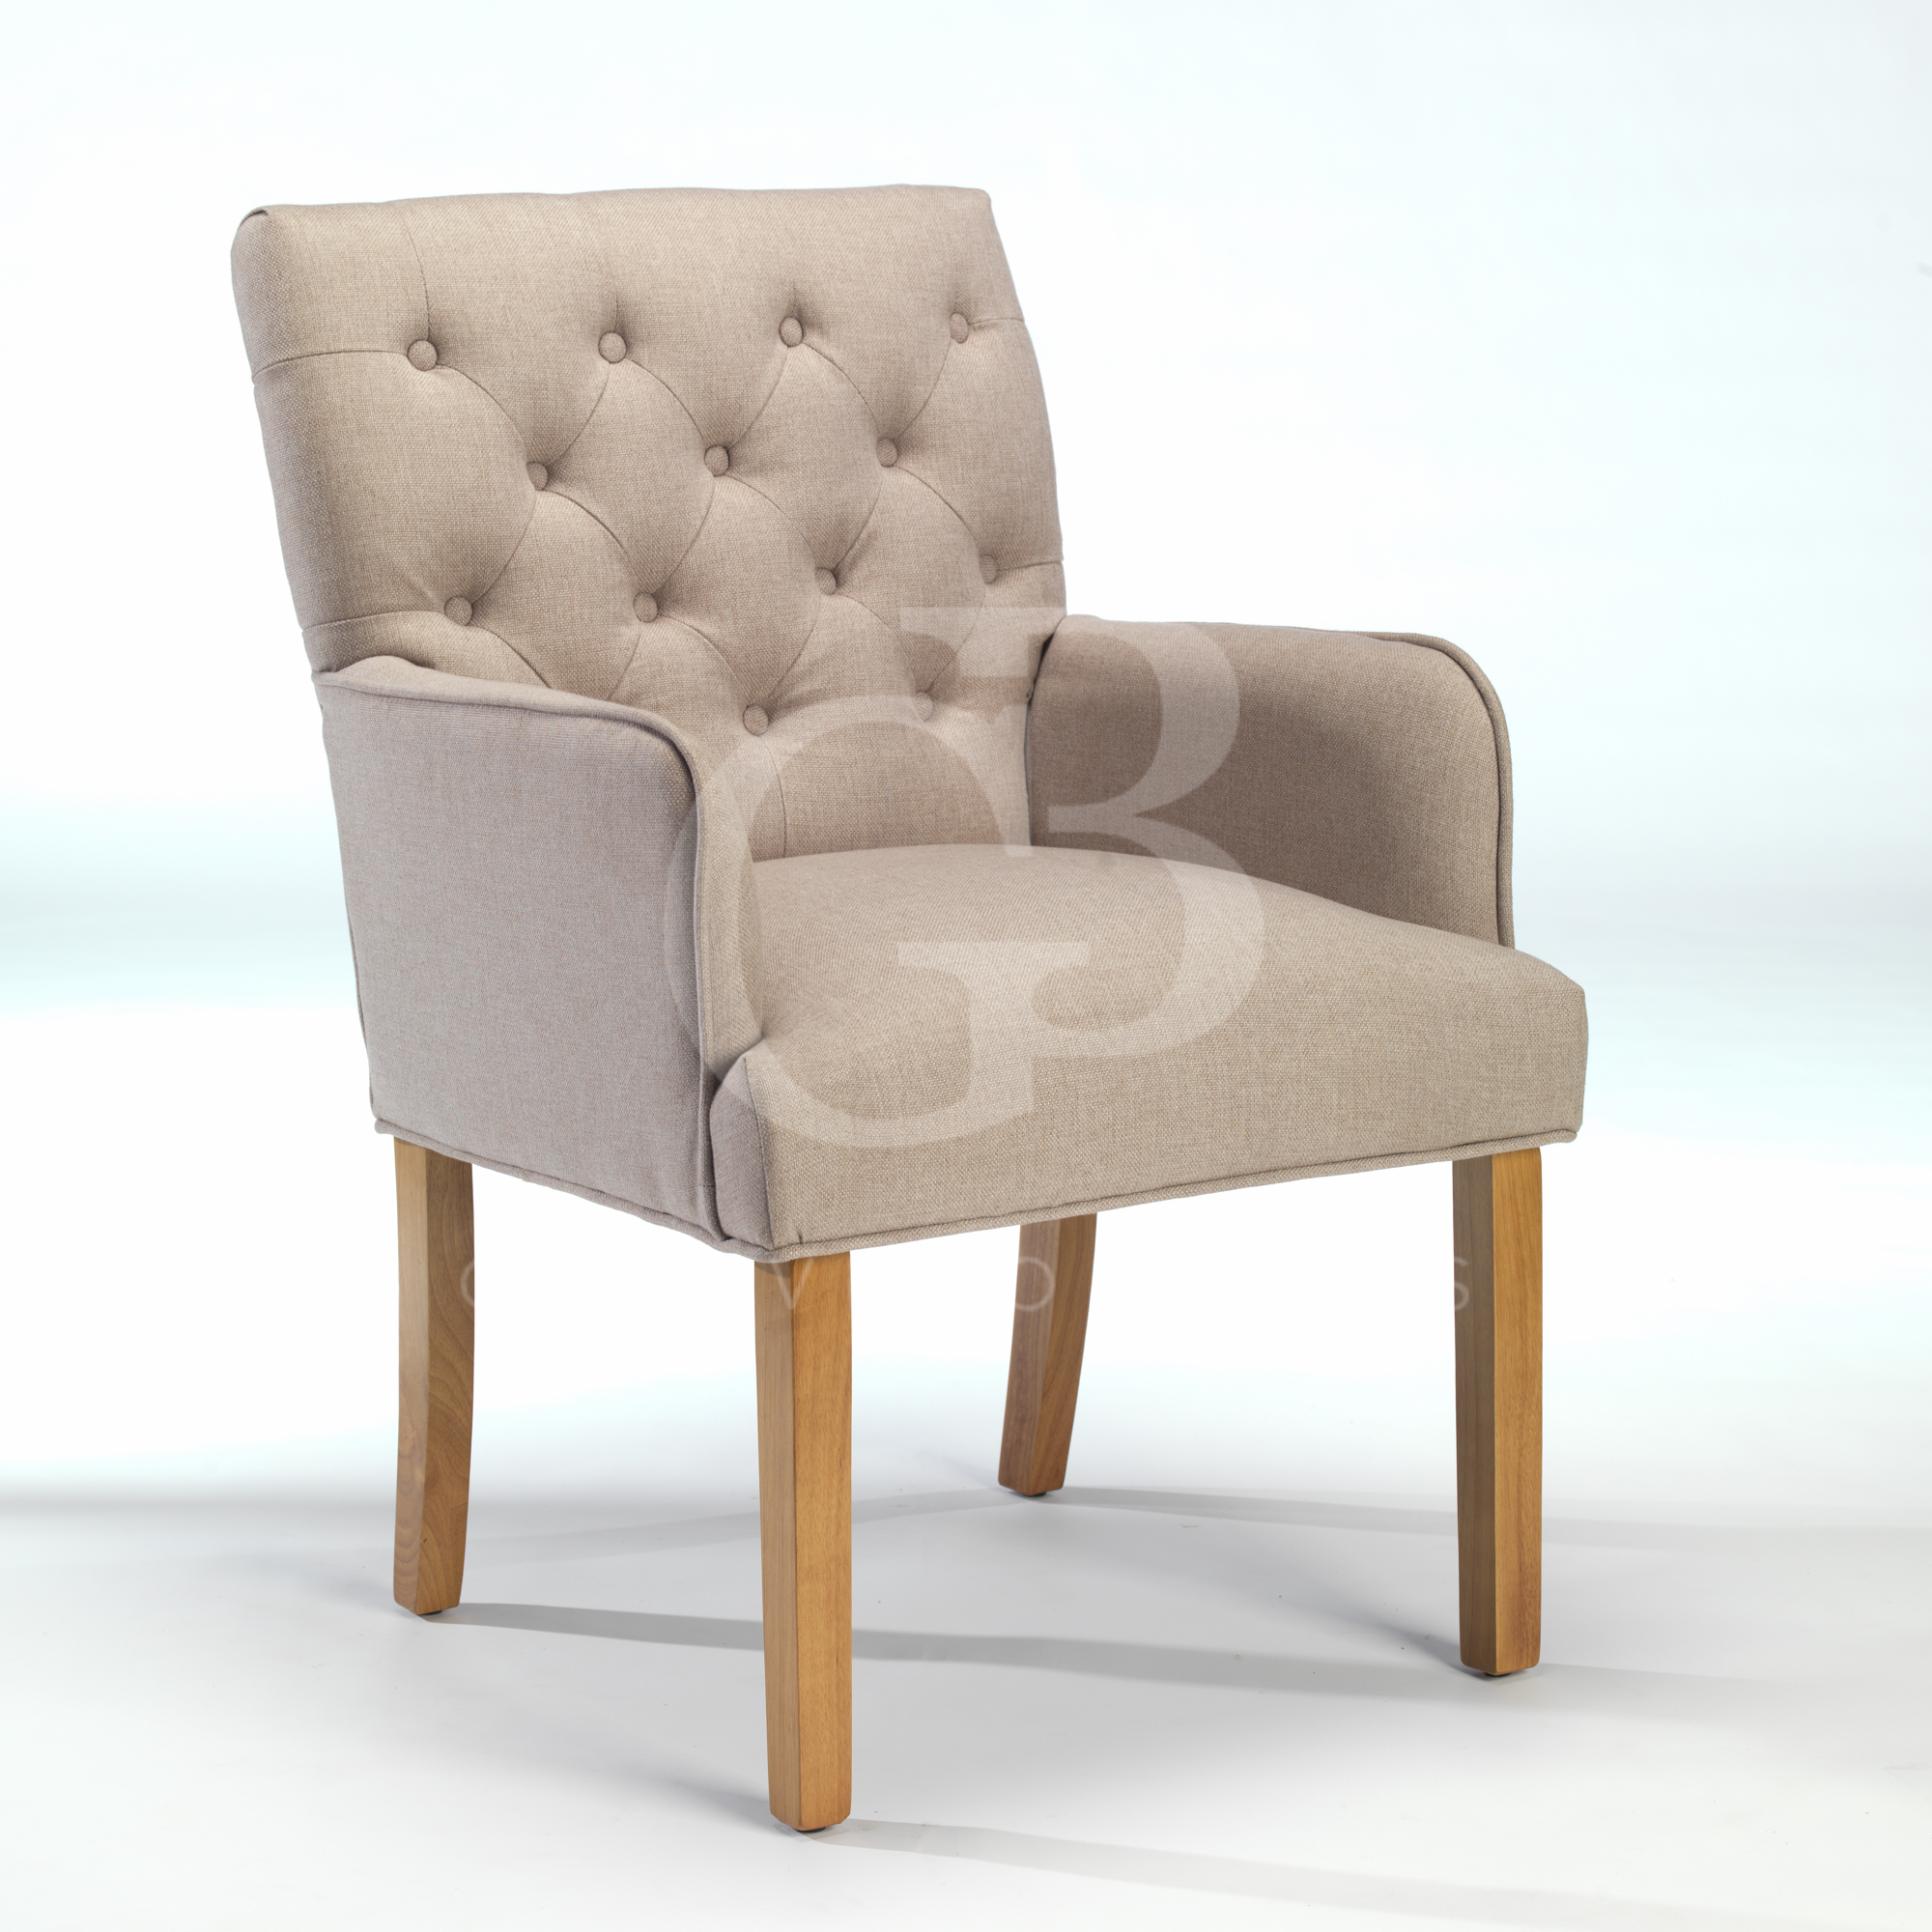 New Upholstered Buttoned Back Dining Chair